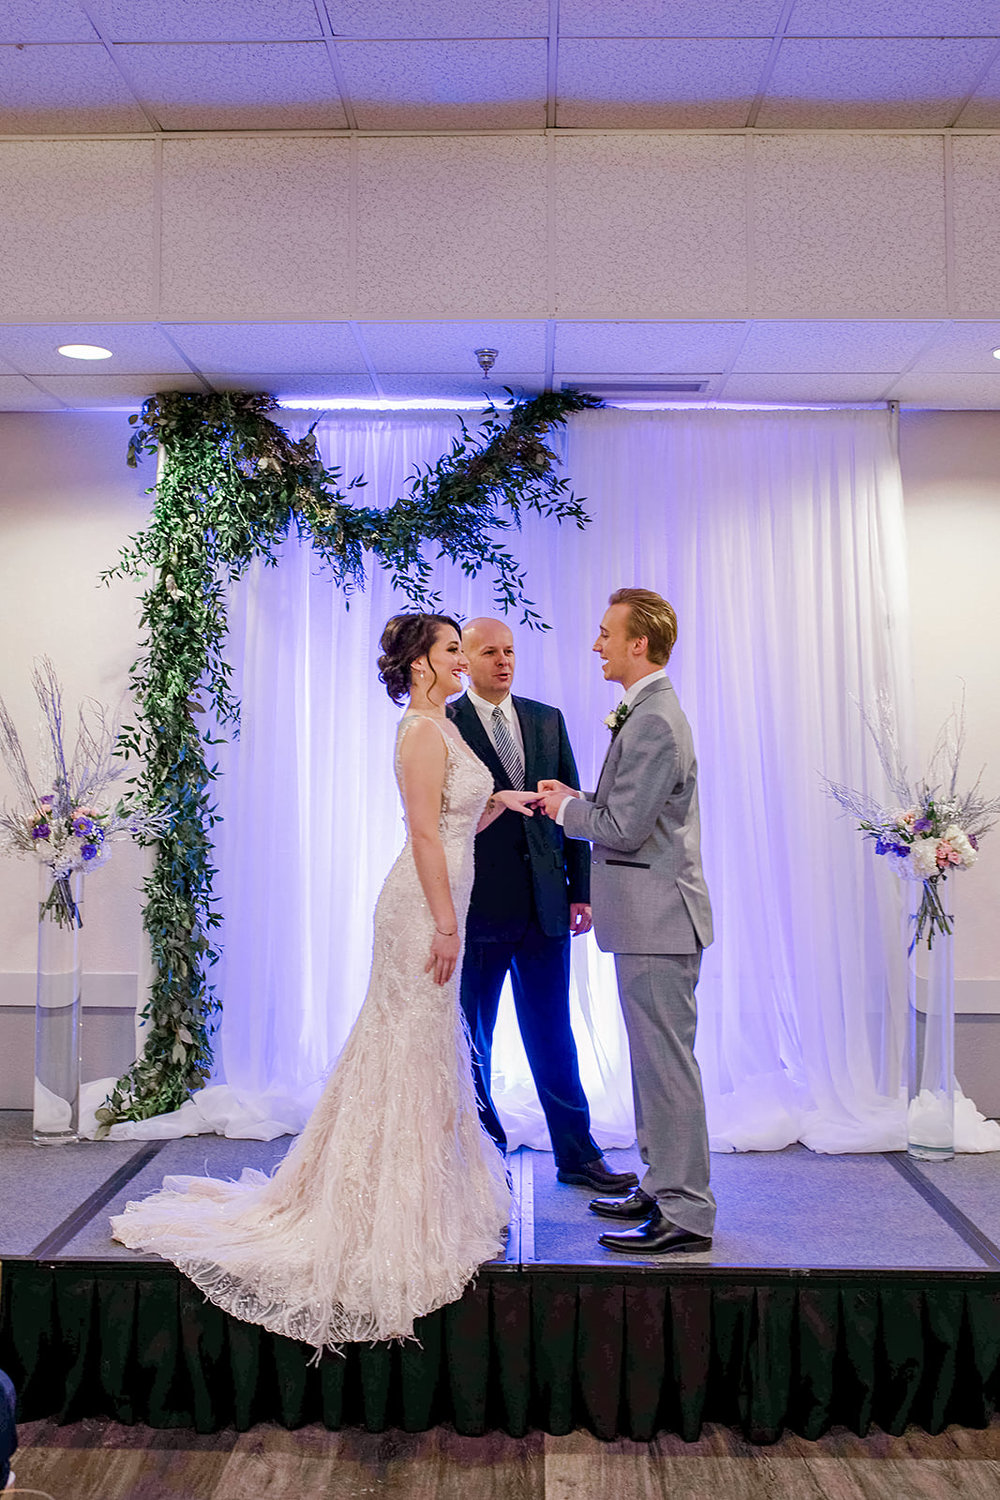 Royal Cliff officiant included in your wedding package   Photo by Rachel Graff Photography